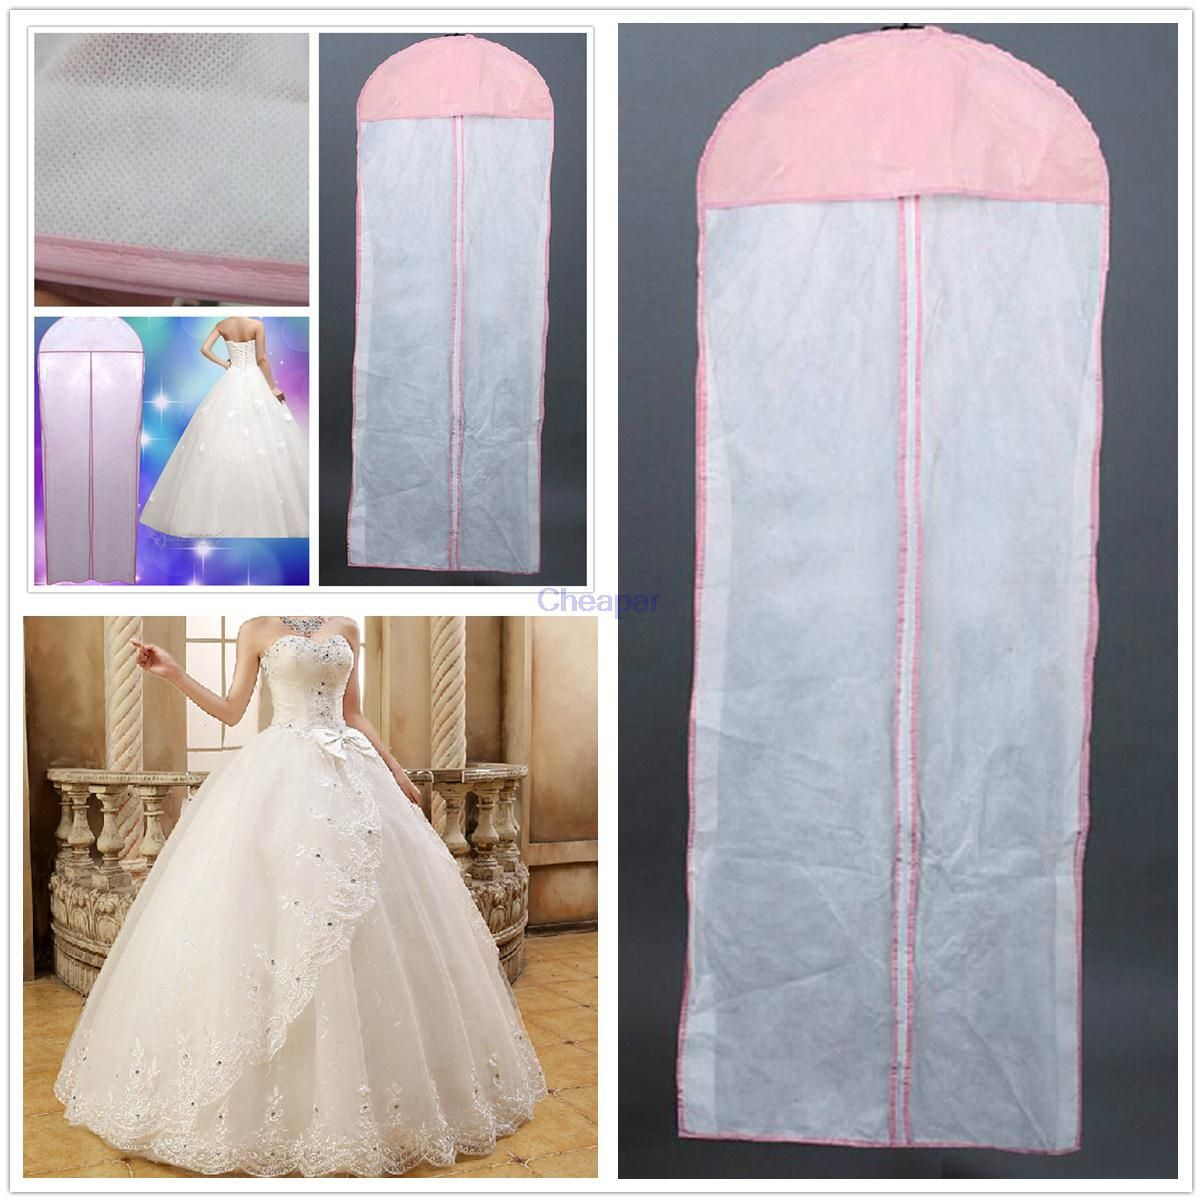 New White Breathable Wedding Prom Dress Bridal Gown Garment Hanging Storage Bag Clothes Dust Cover Zip & New White Breathable Wedding Prom Dress Bridal Gown Garment Hanging ...